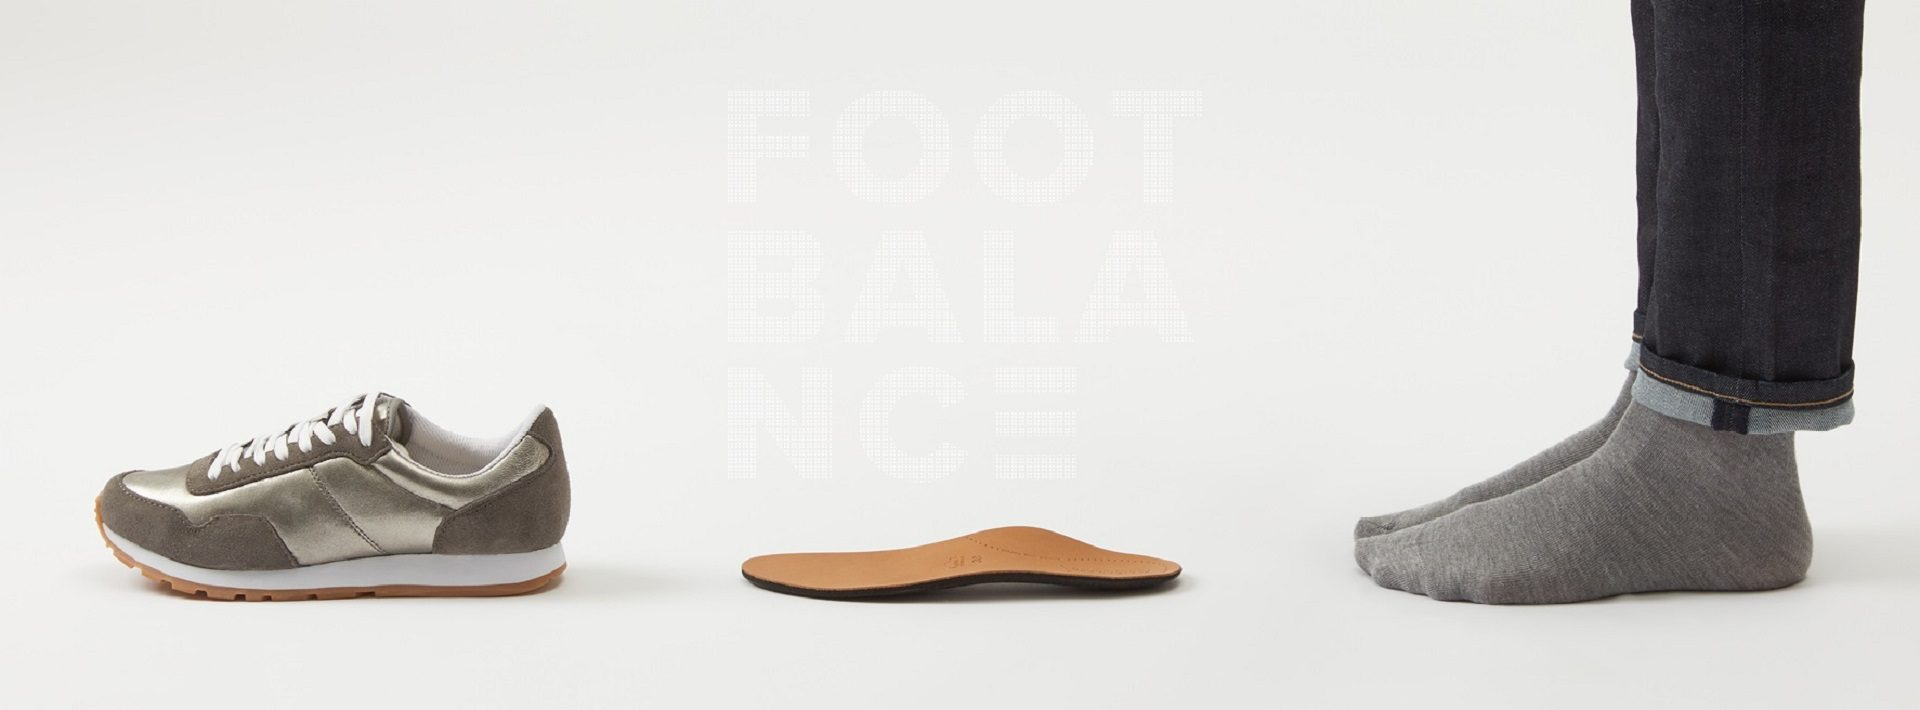 FootBalance FootBalance 100% Custom Leather Insole Unisex Profile Wide